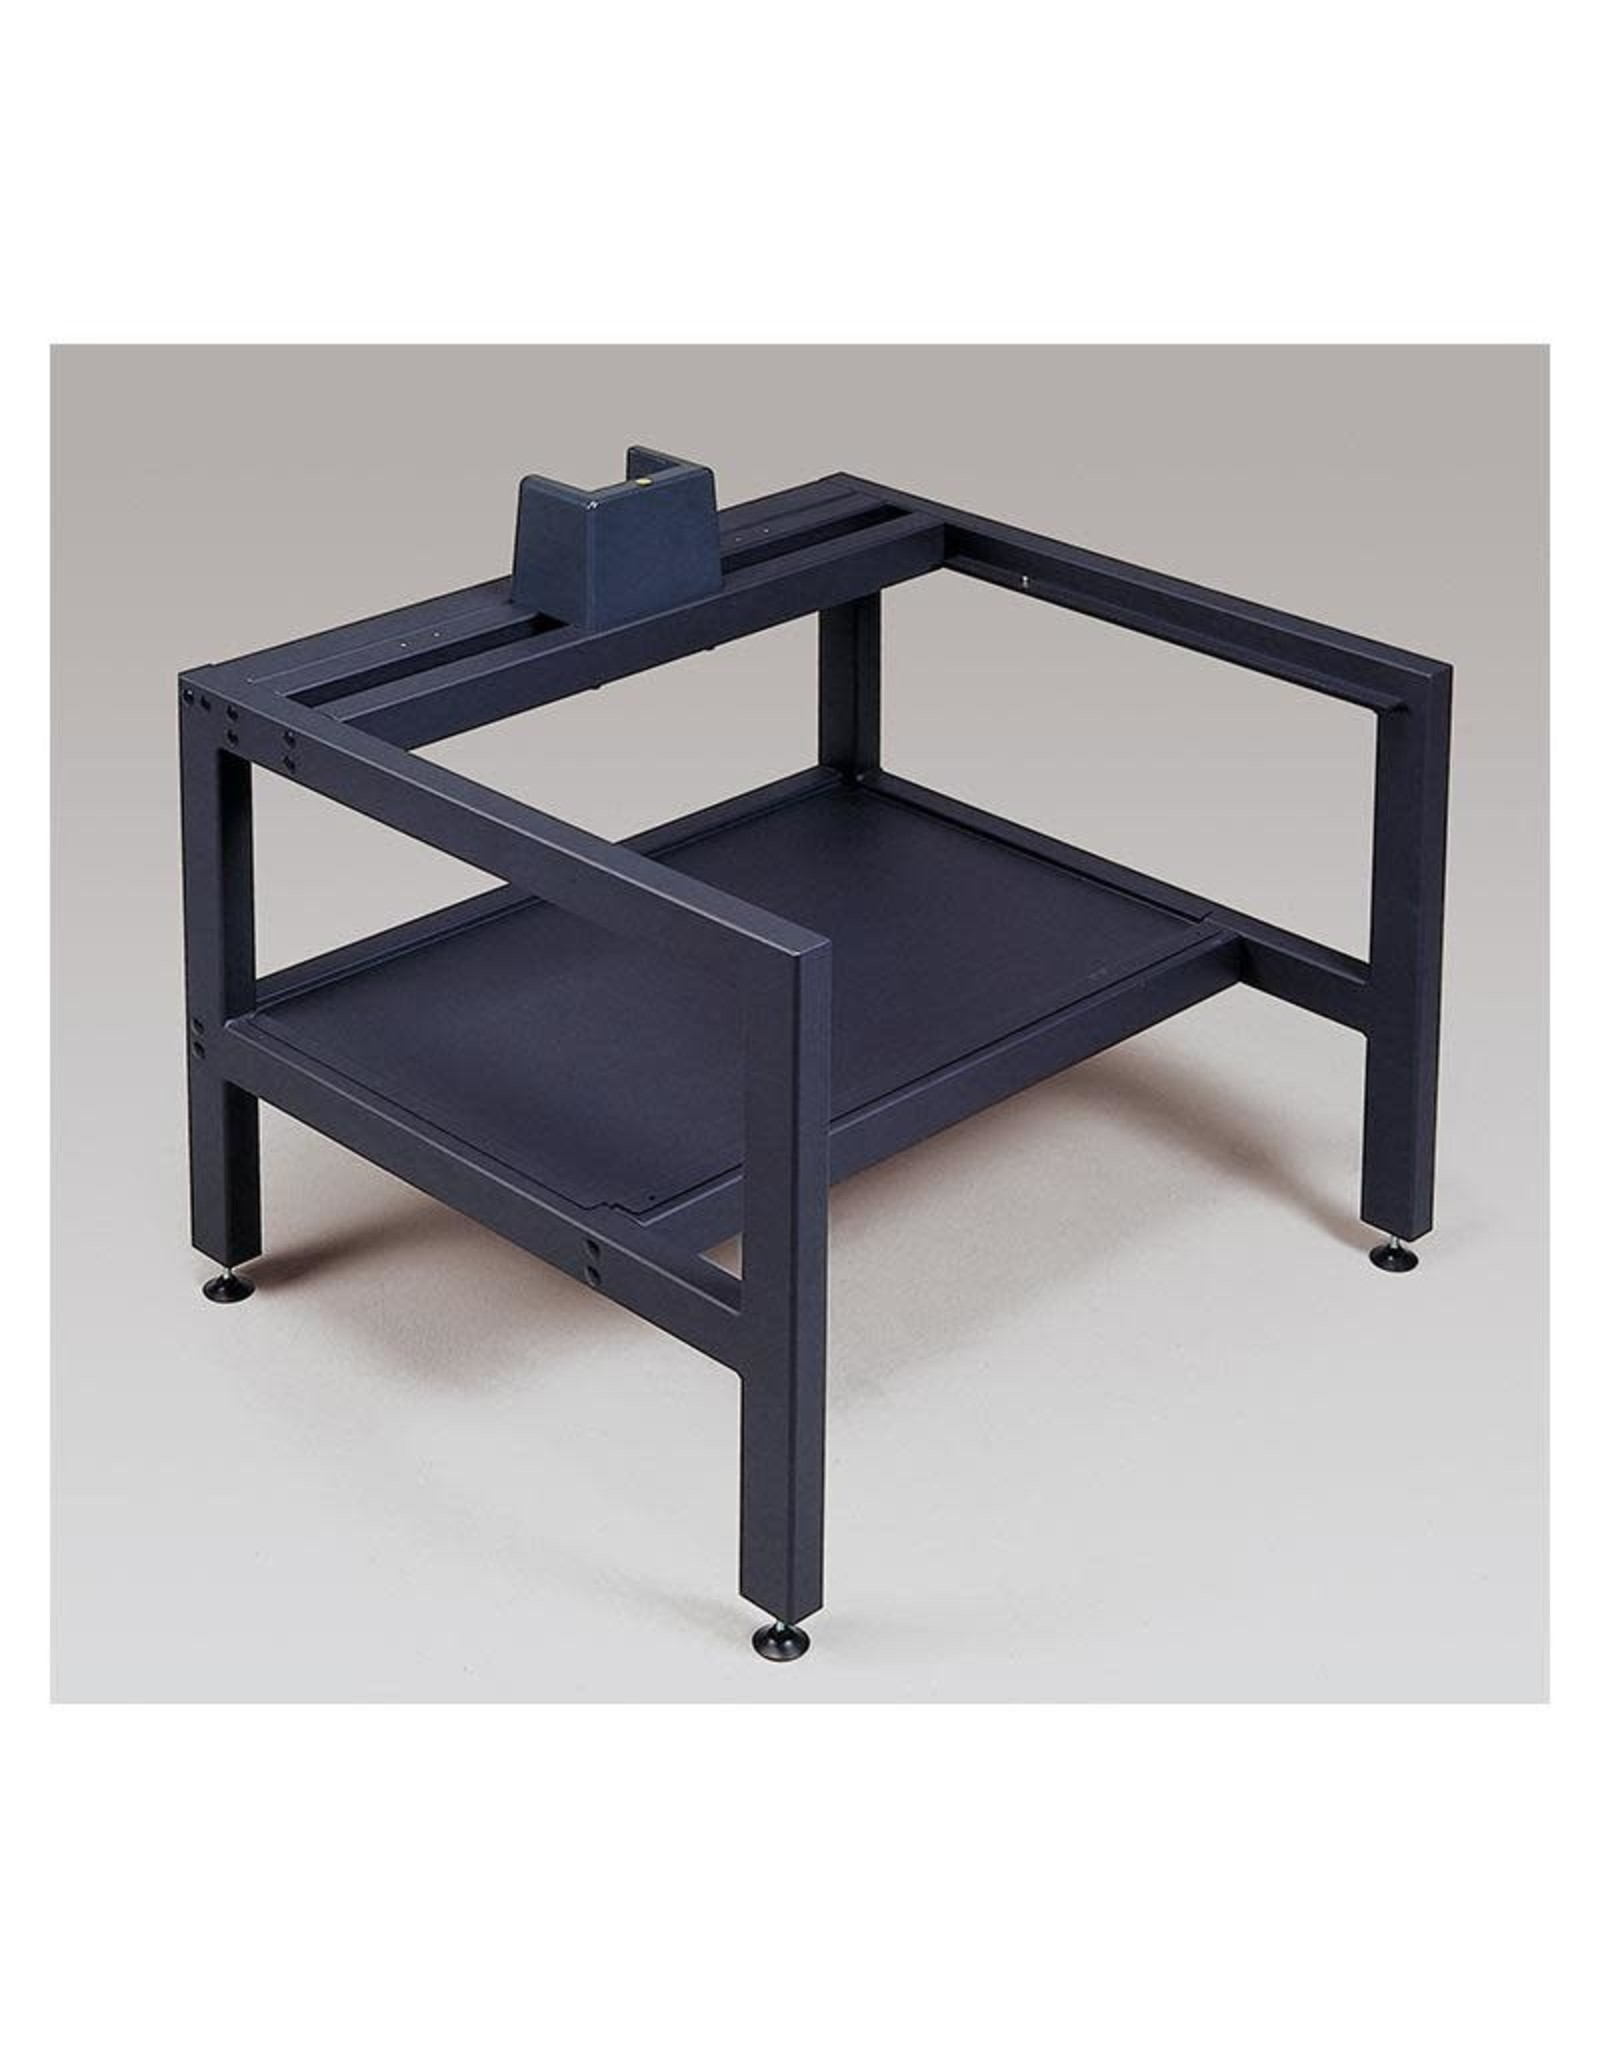 Kaiser Kaiser rePRO Floor Stand, includes base for # 5612 column, without baseplate